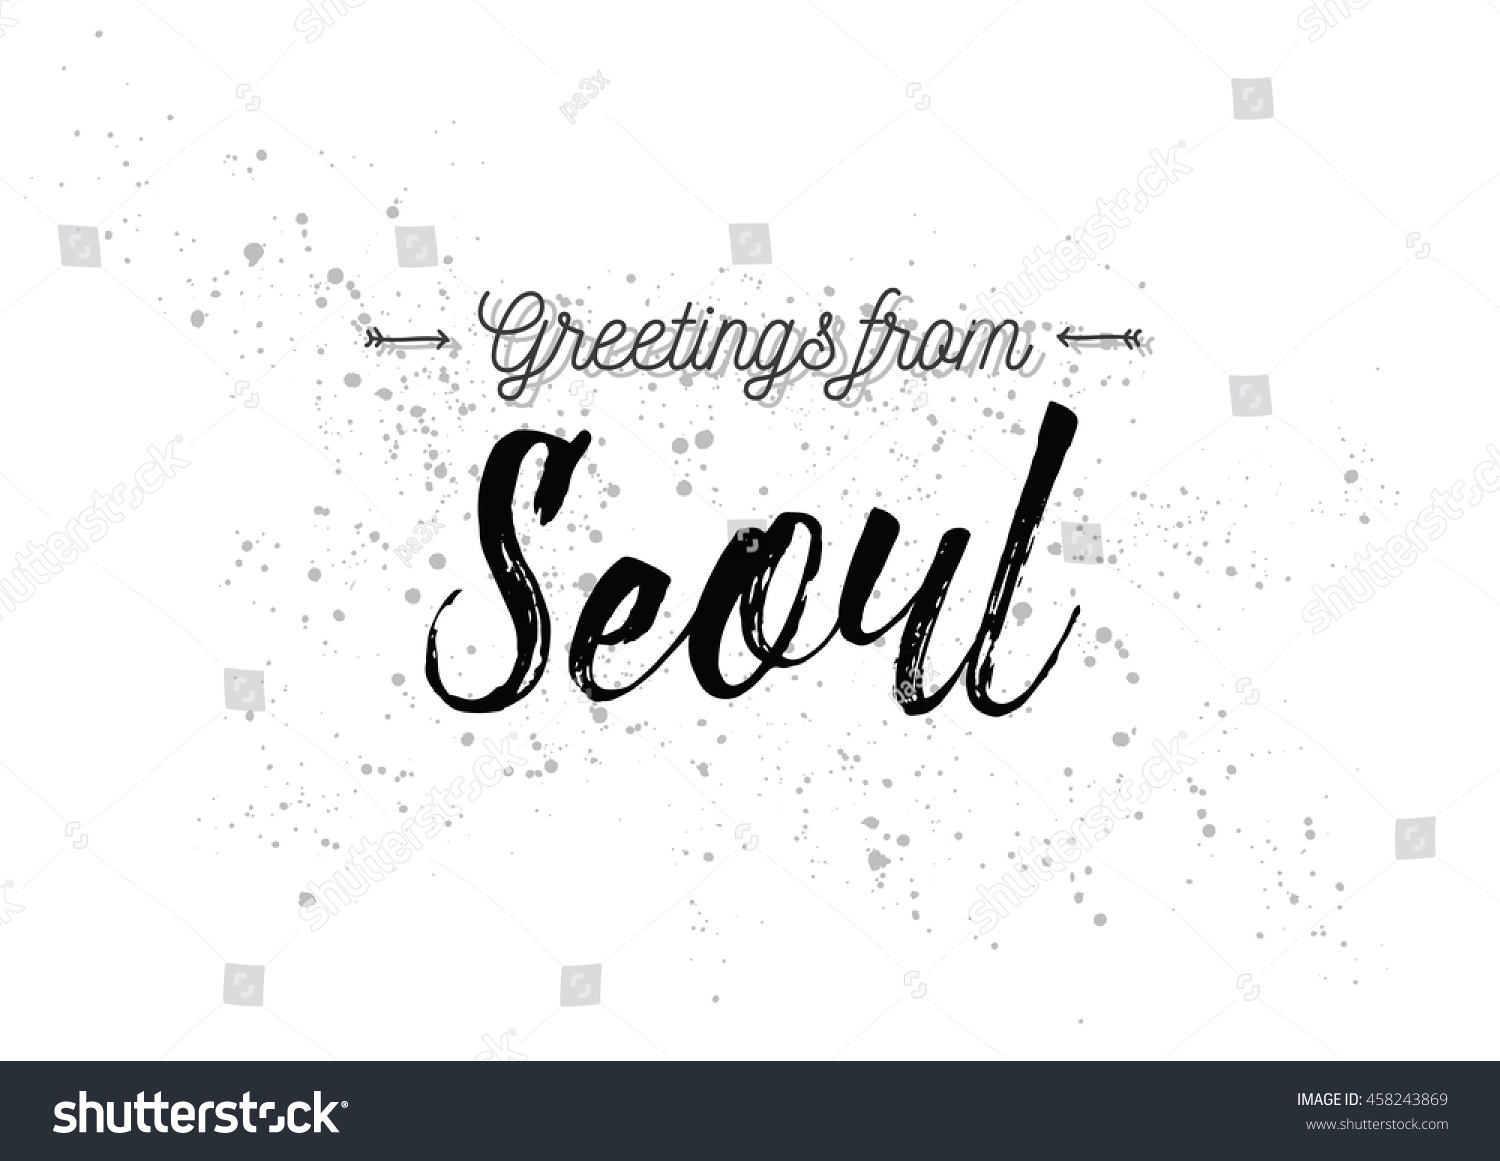 Greetings Seoul South Korea Greeting Card Stock Vector 458243869